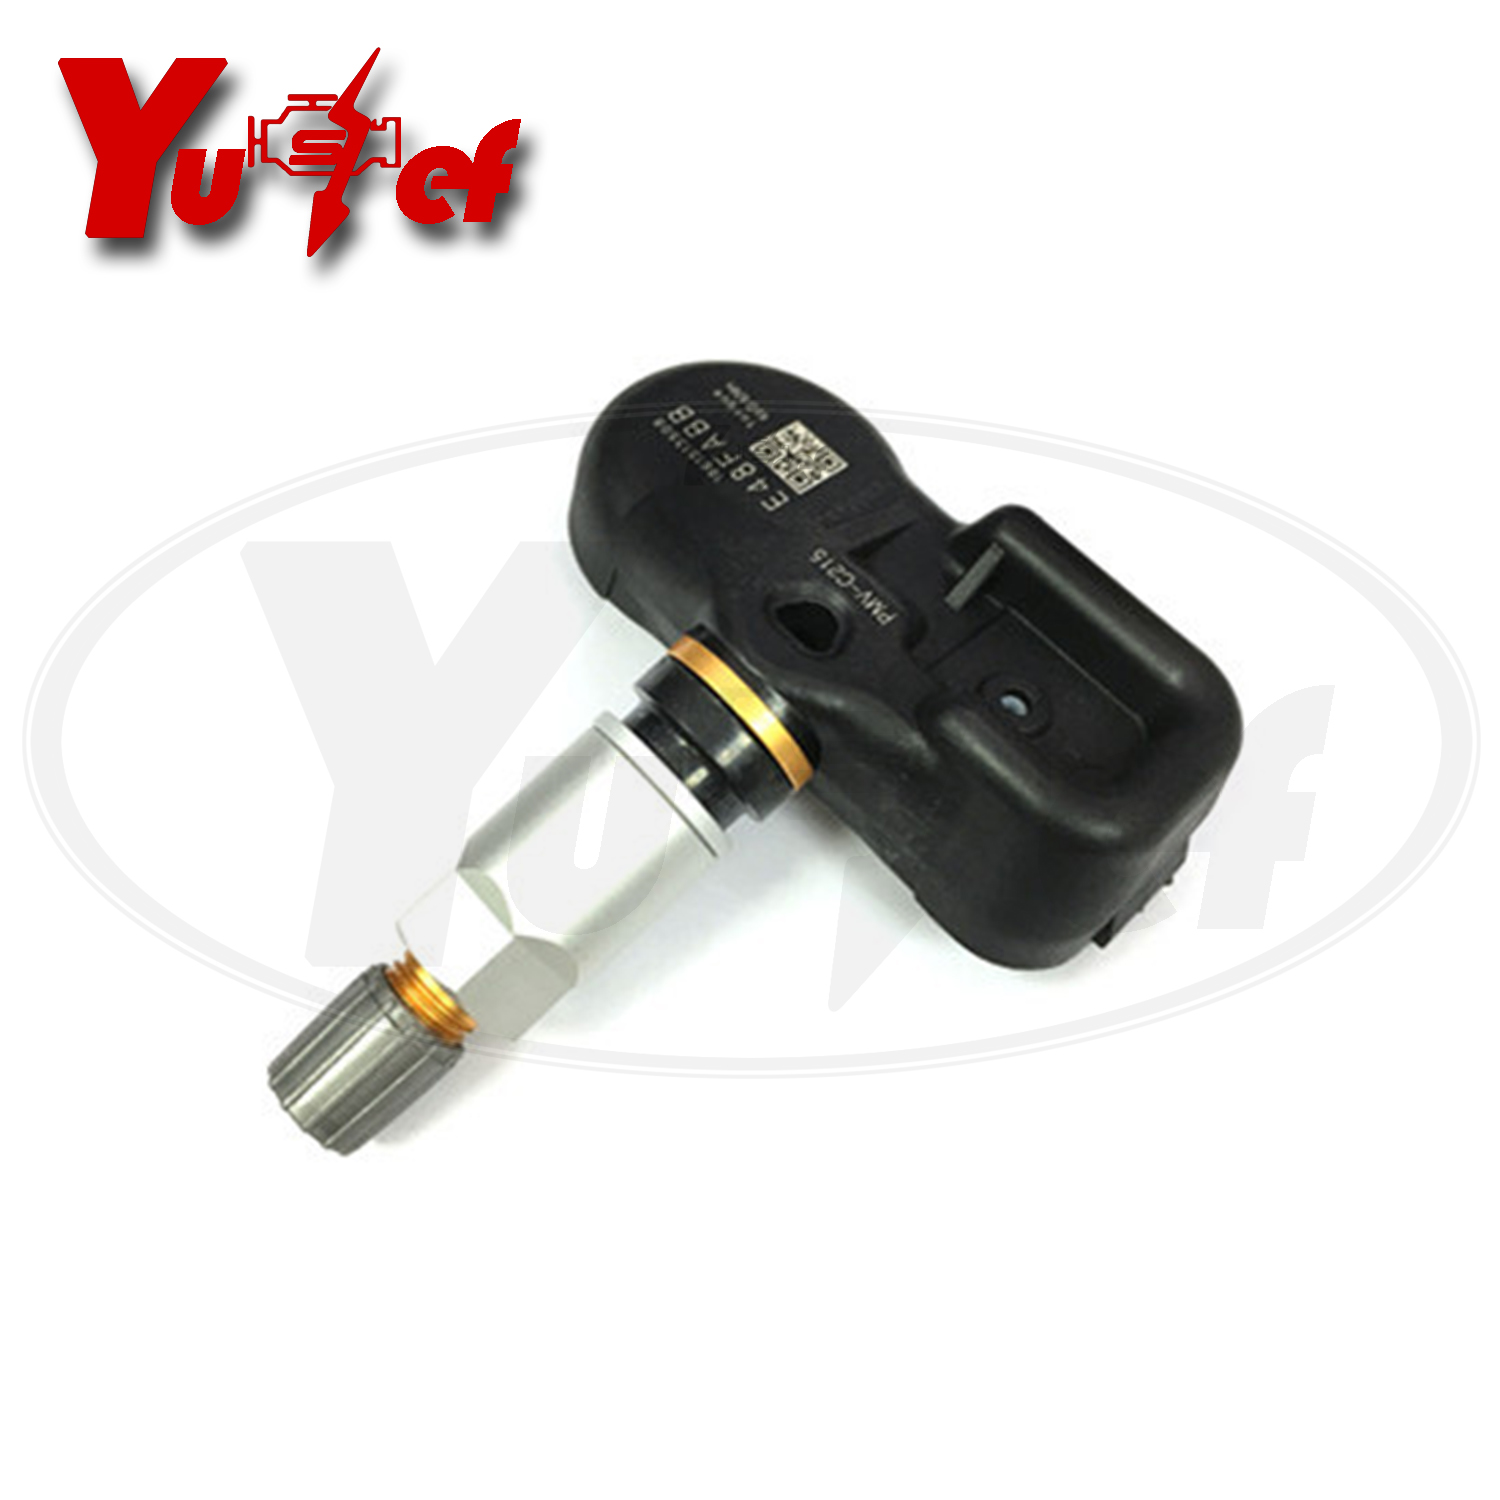 433MHZ Tire Pressure Monitoring System Sensor For Toyota LC200 C-HR Corolla Pacific Camry Lexus LX570 4260748020 42607-48020